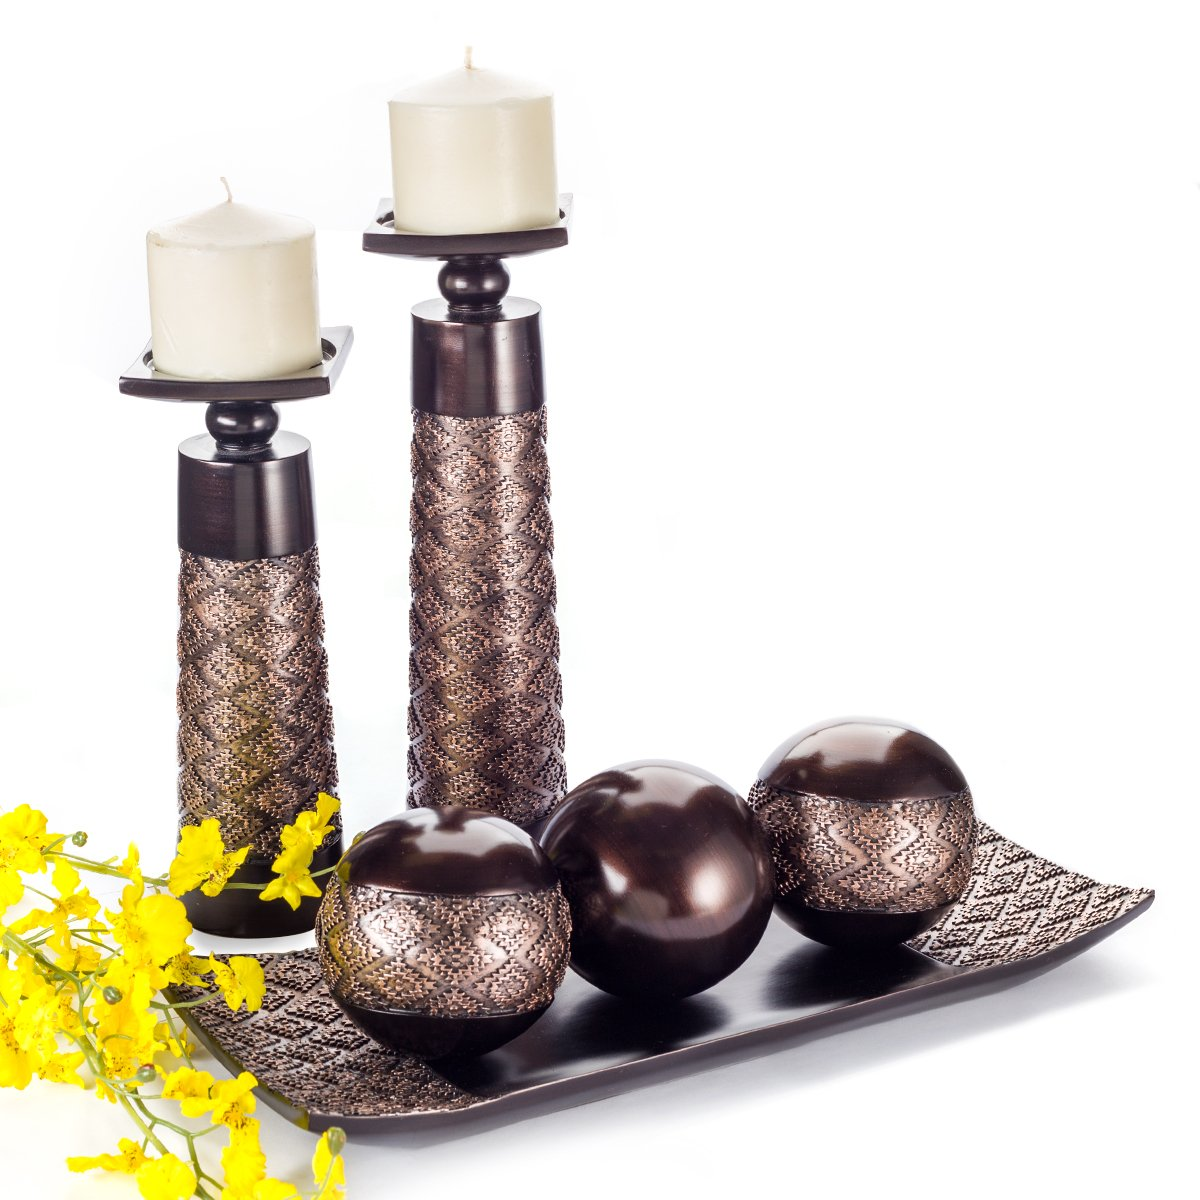 amazon com dublin decorative candle holder set of 2 home decor